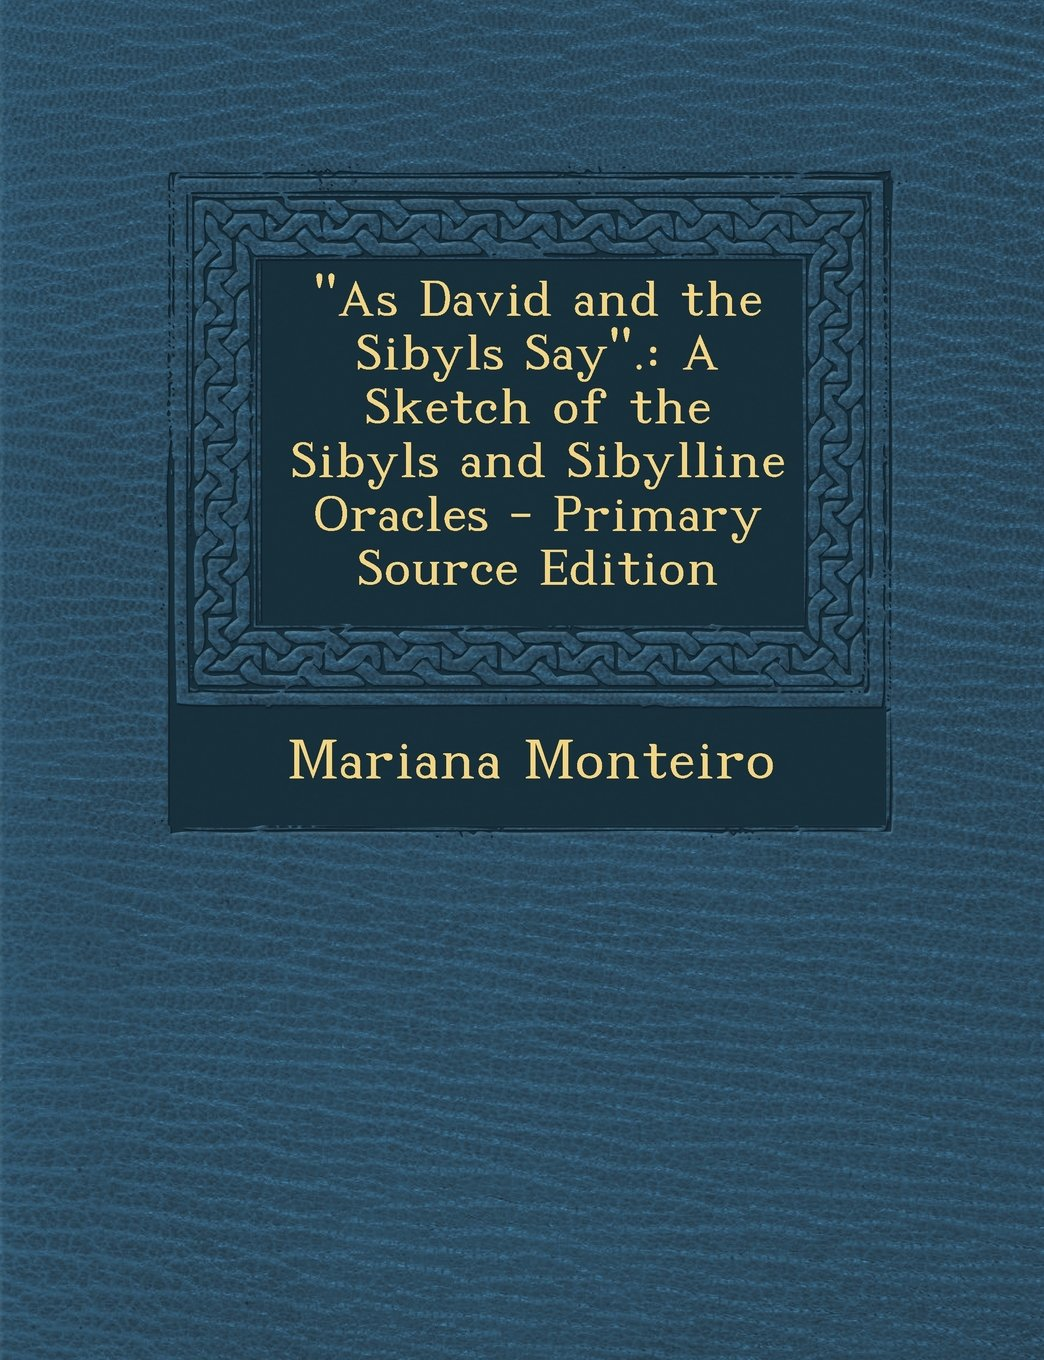 Download As David and the Sibyls Say.: A Sketch of the Sibyls and Sibylline Oracles - Primary Source Edition pdf epub